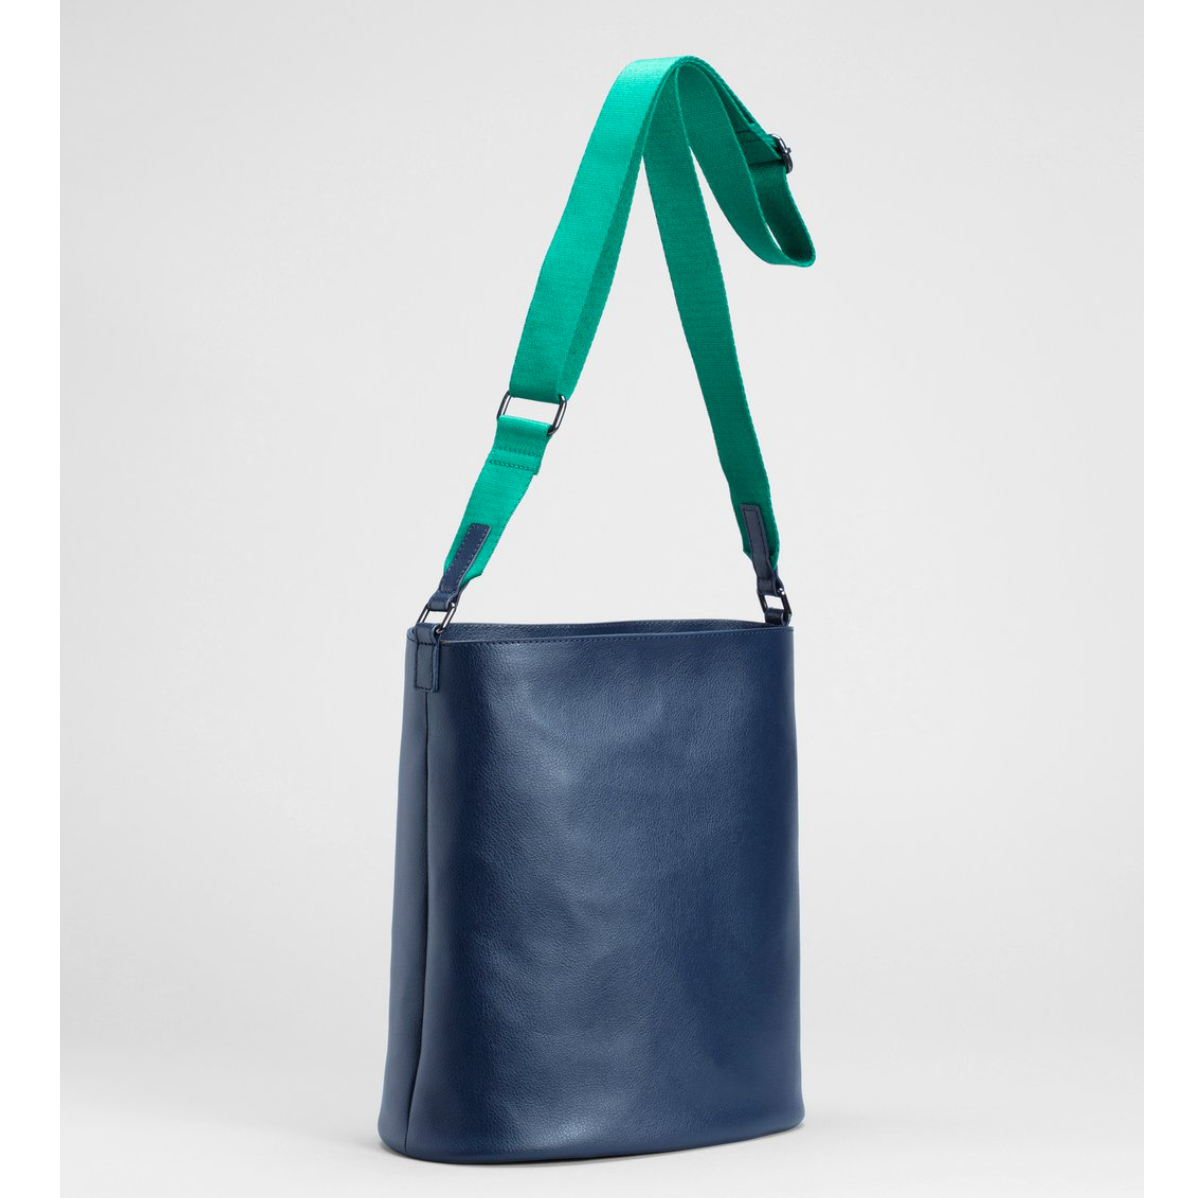 Leni Large Bag - Navy/Green - 100% recycled leather